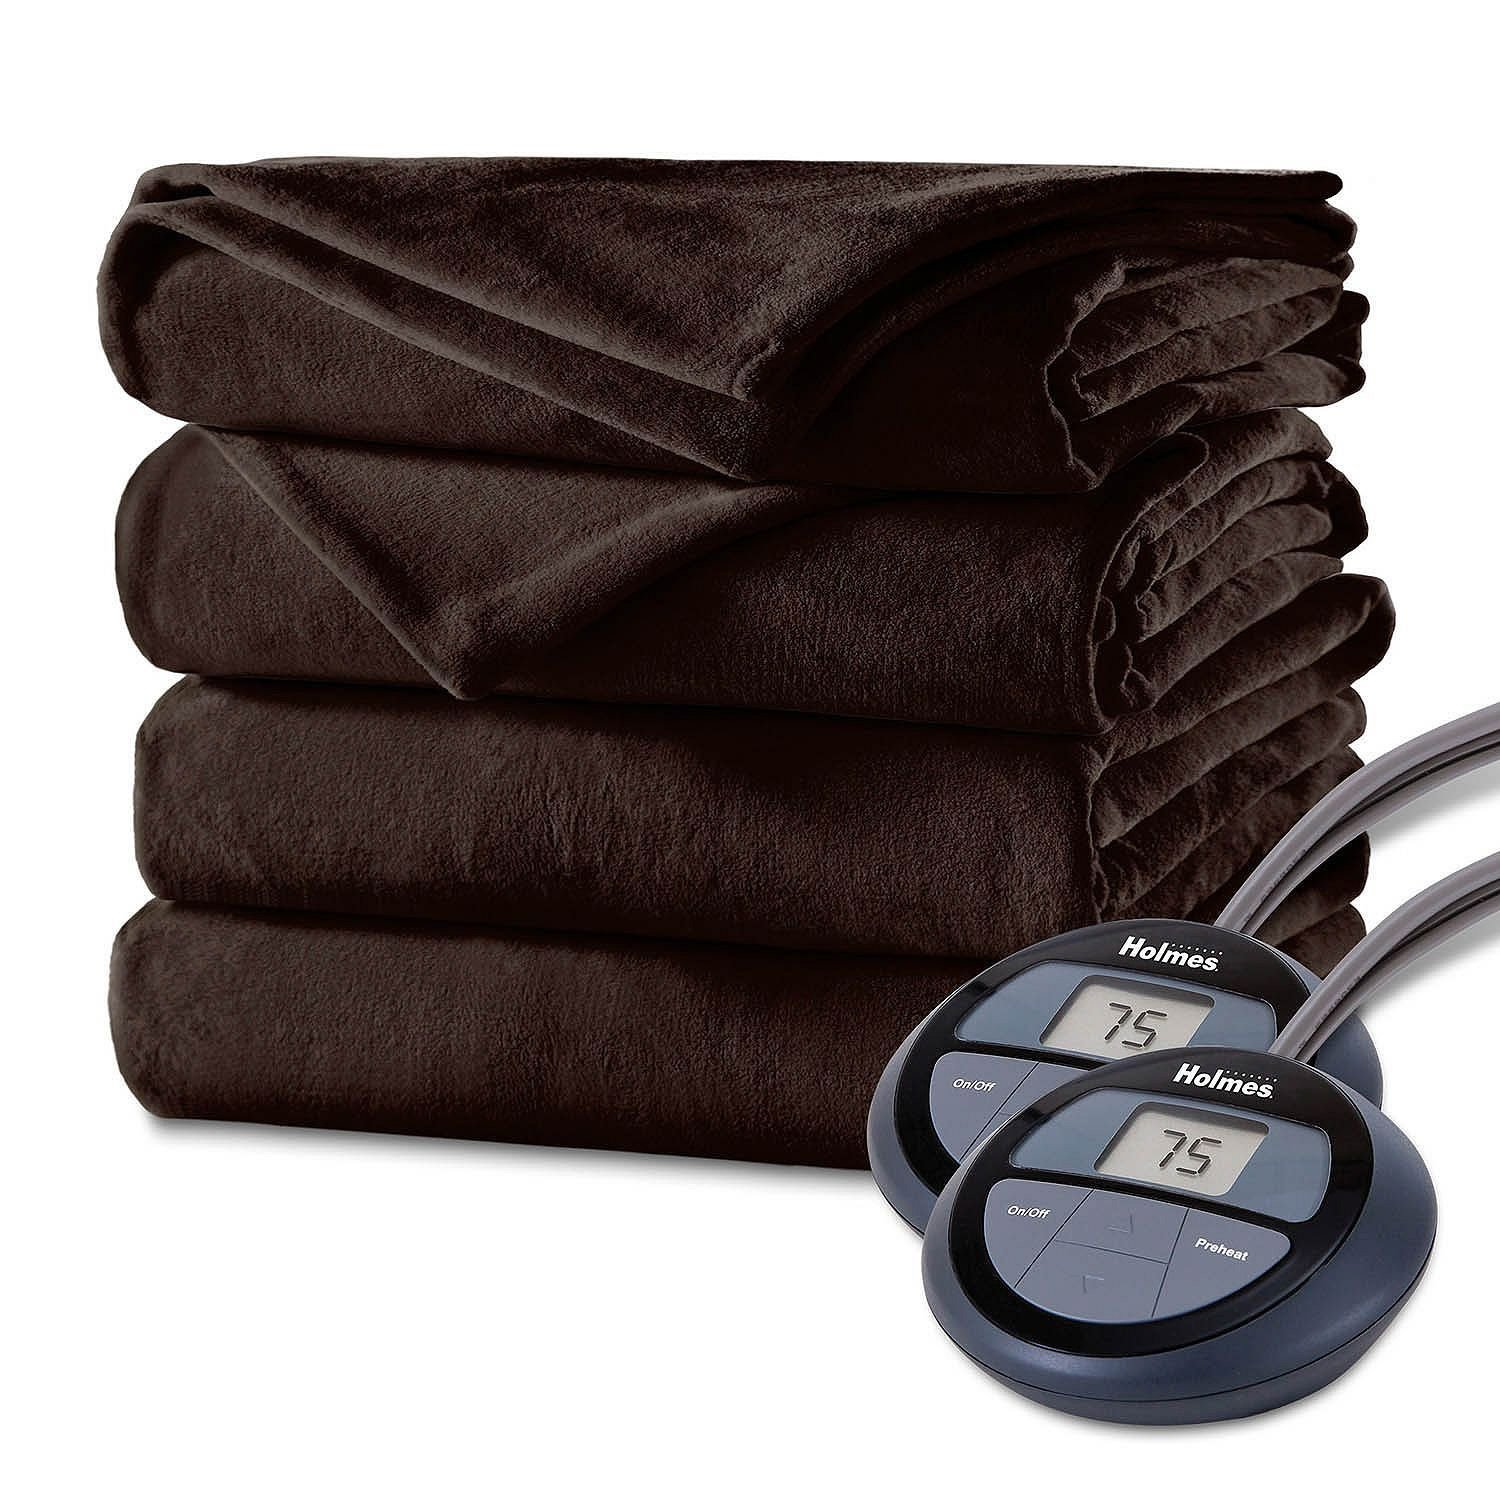 Holmes by Sunbeam Velvet Plush Electric Heated Blanket King Size Walnut Brown